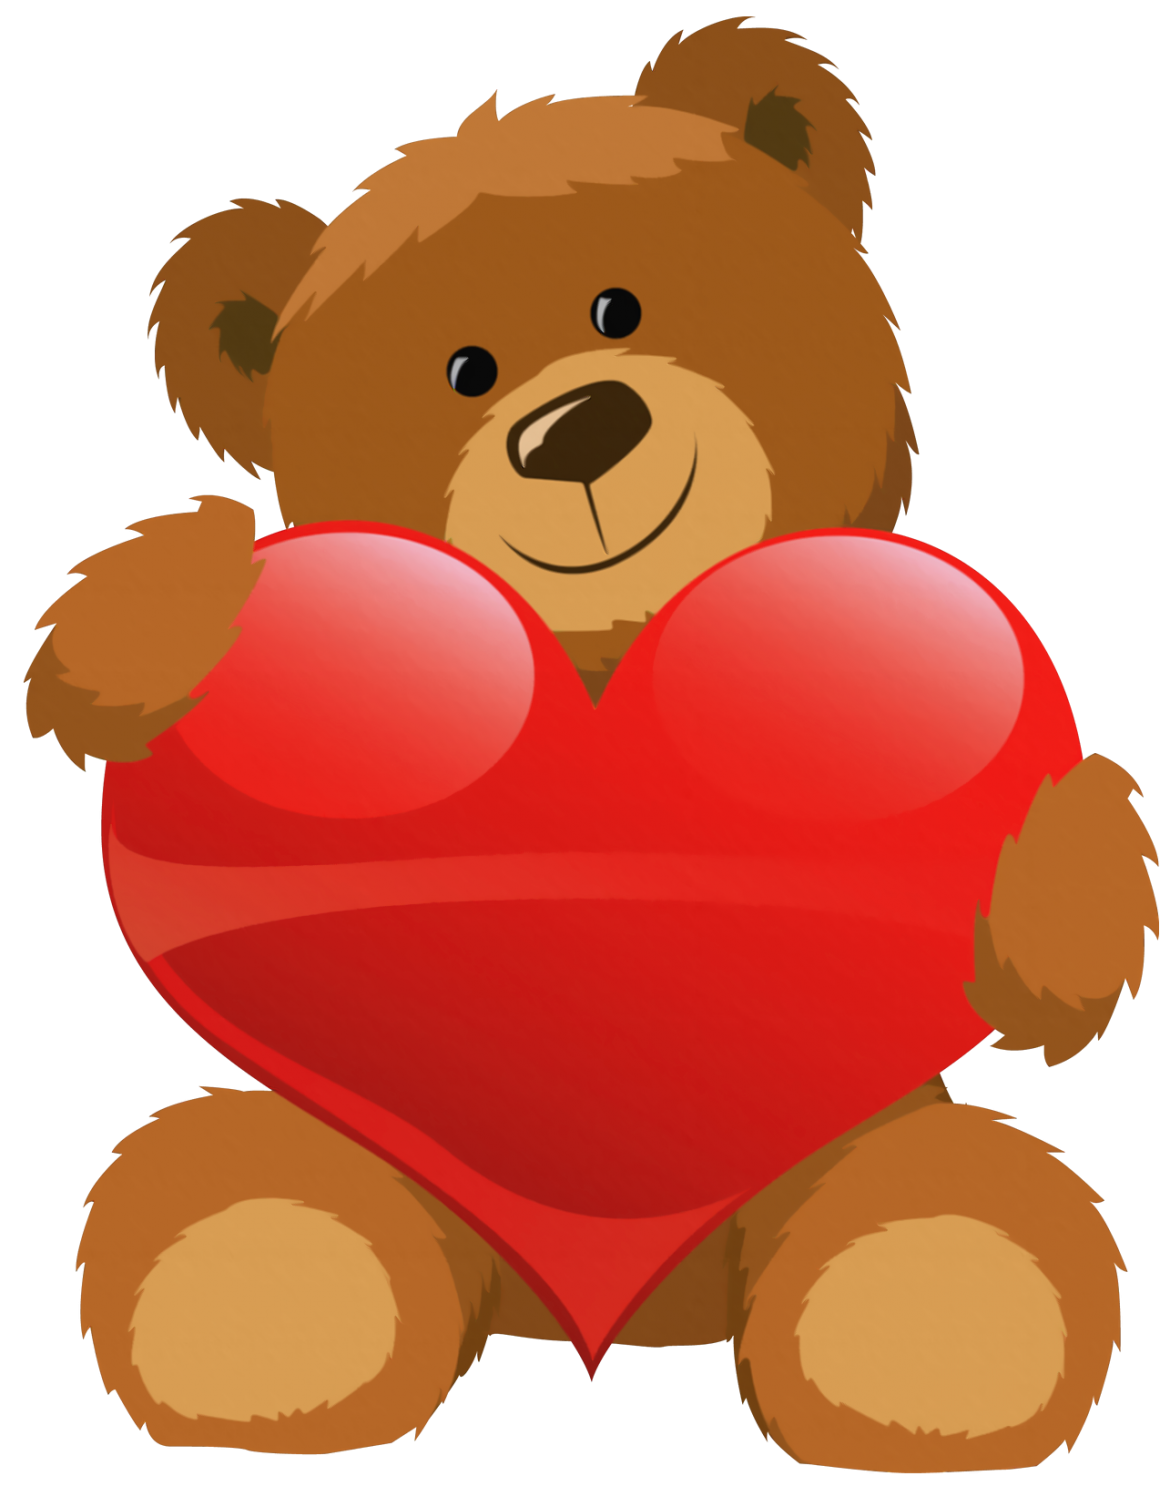 Bear with a heart clipart graphic free library cute-grizzly-bear-clipart-cute-bear-with-heart-png-clipart-picture ... graphic free library